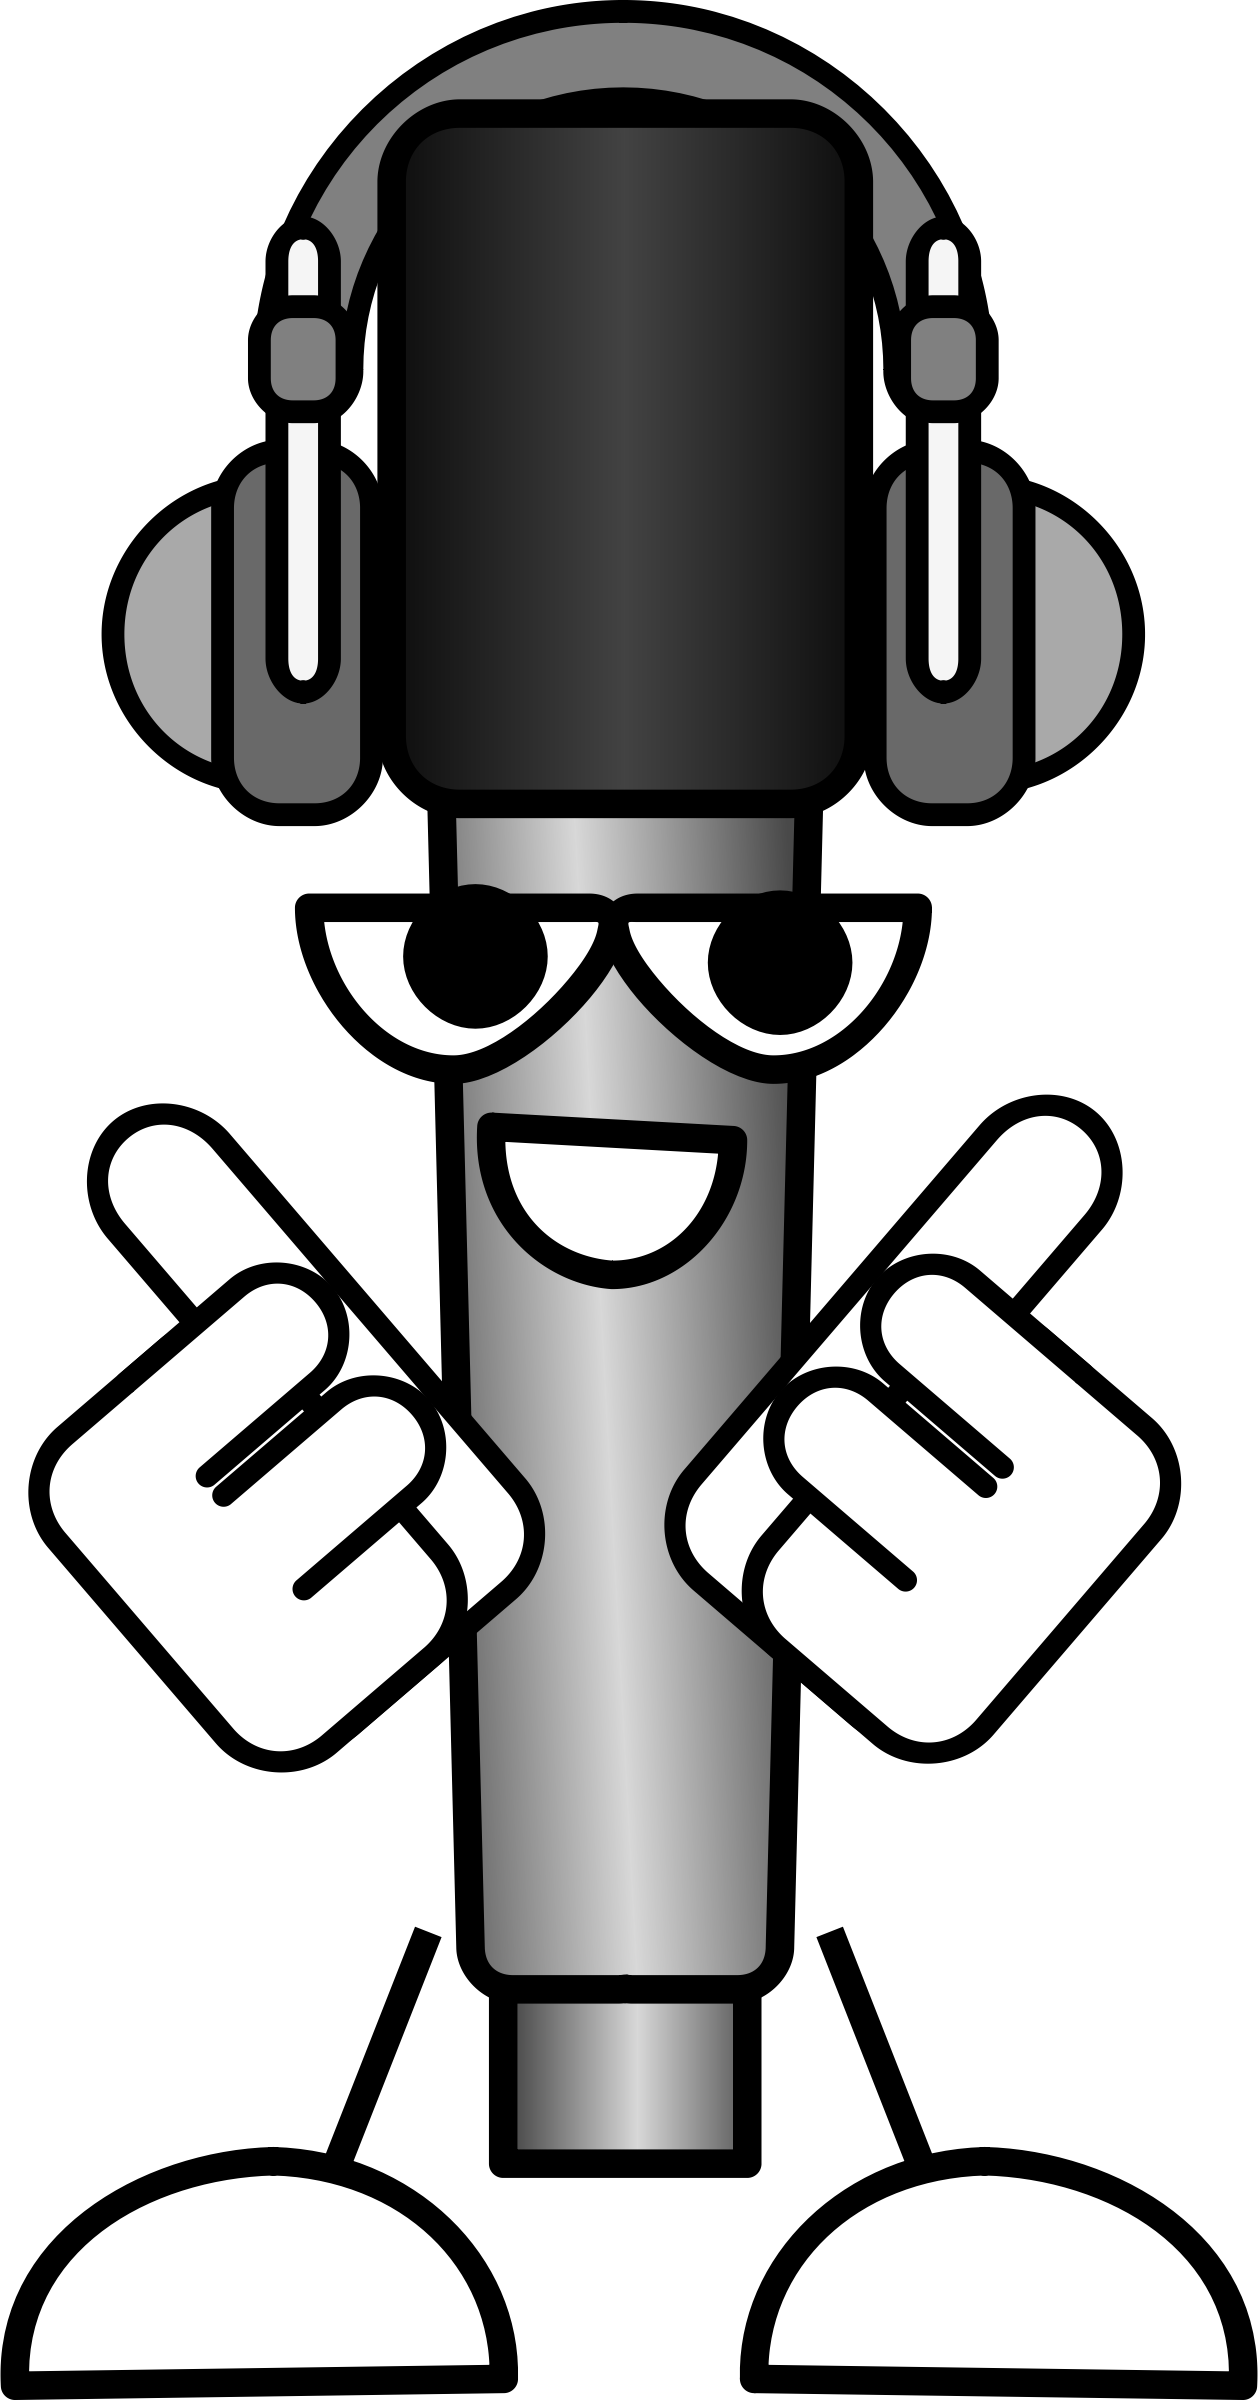 Microphone clipart cord clipart. Drawing free on dumielauxepices